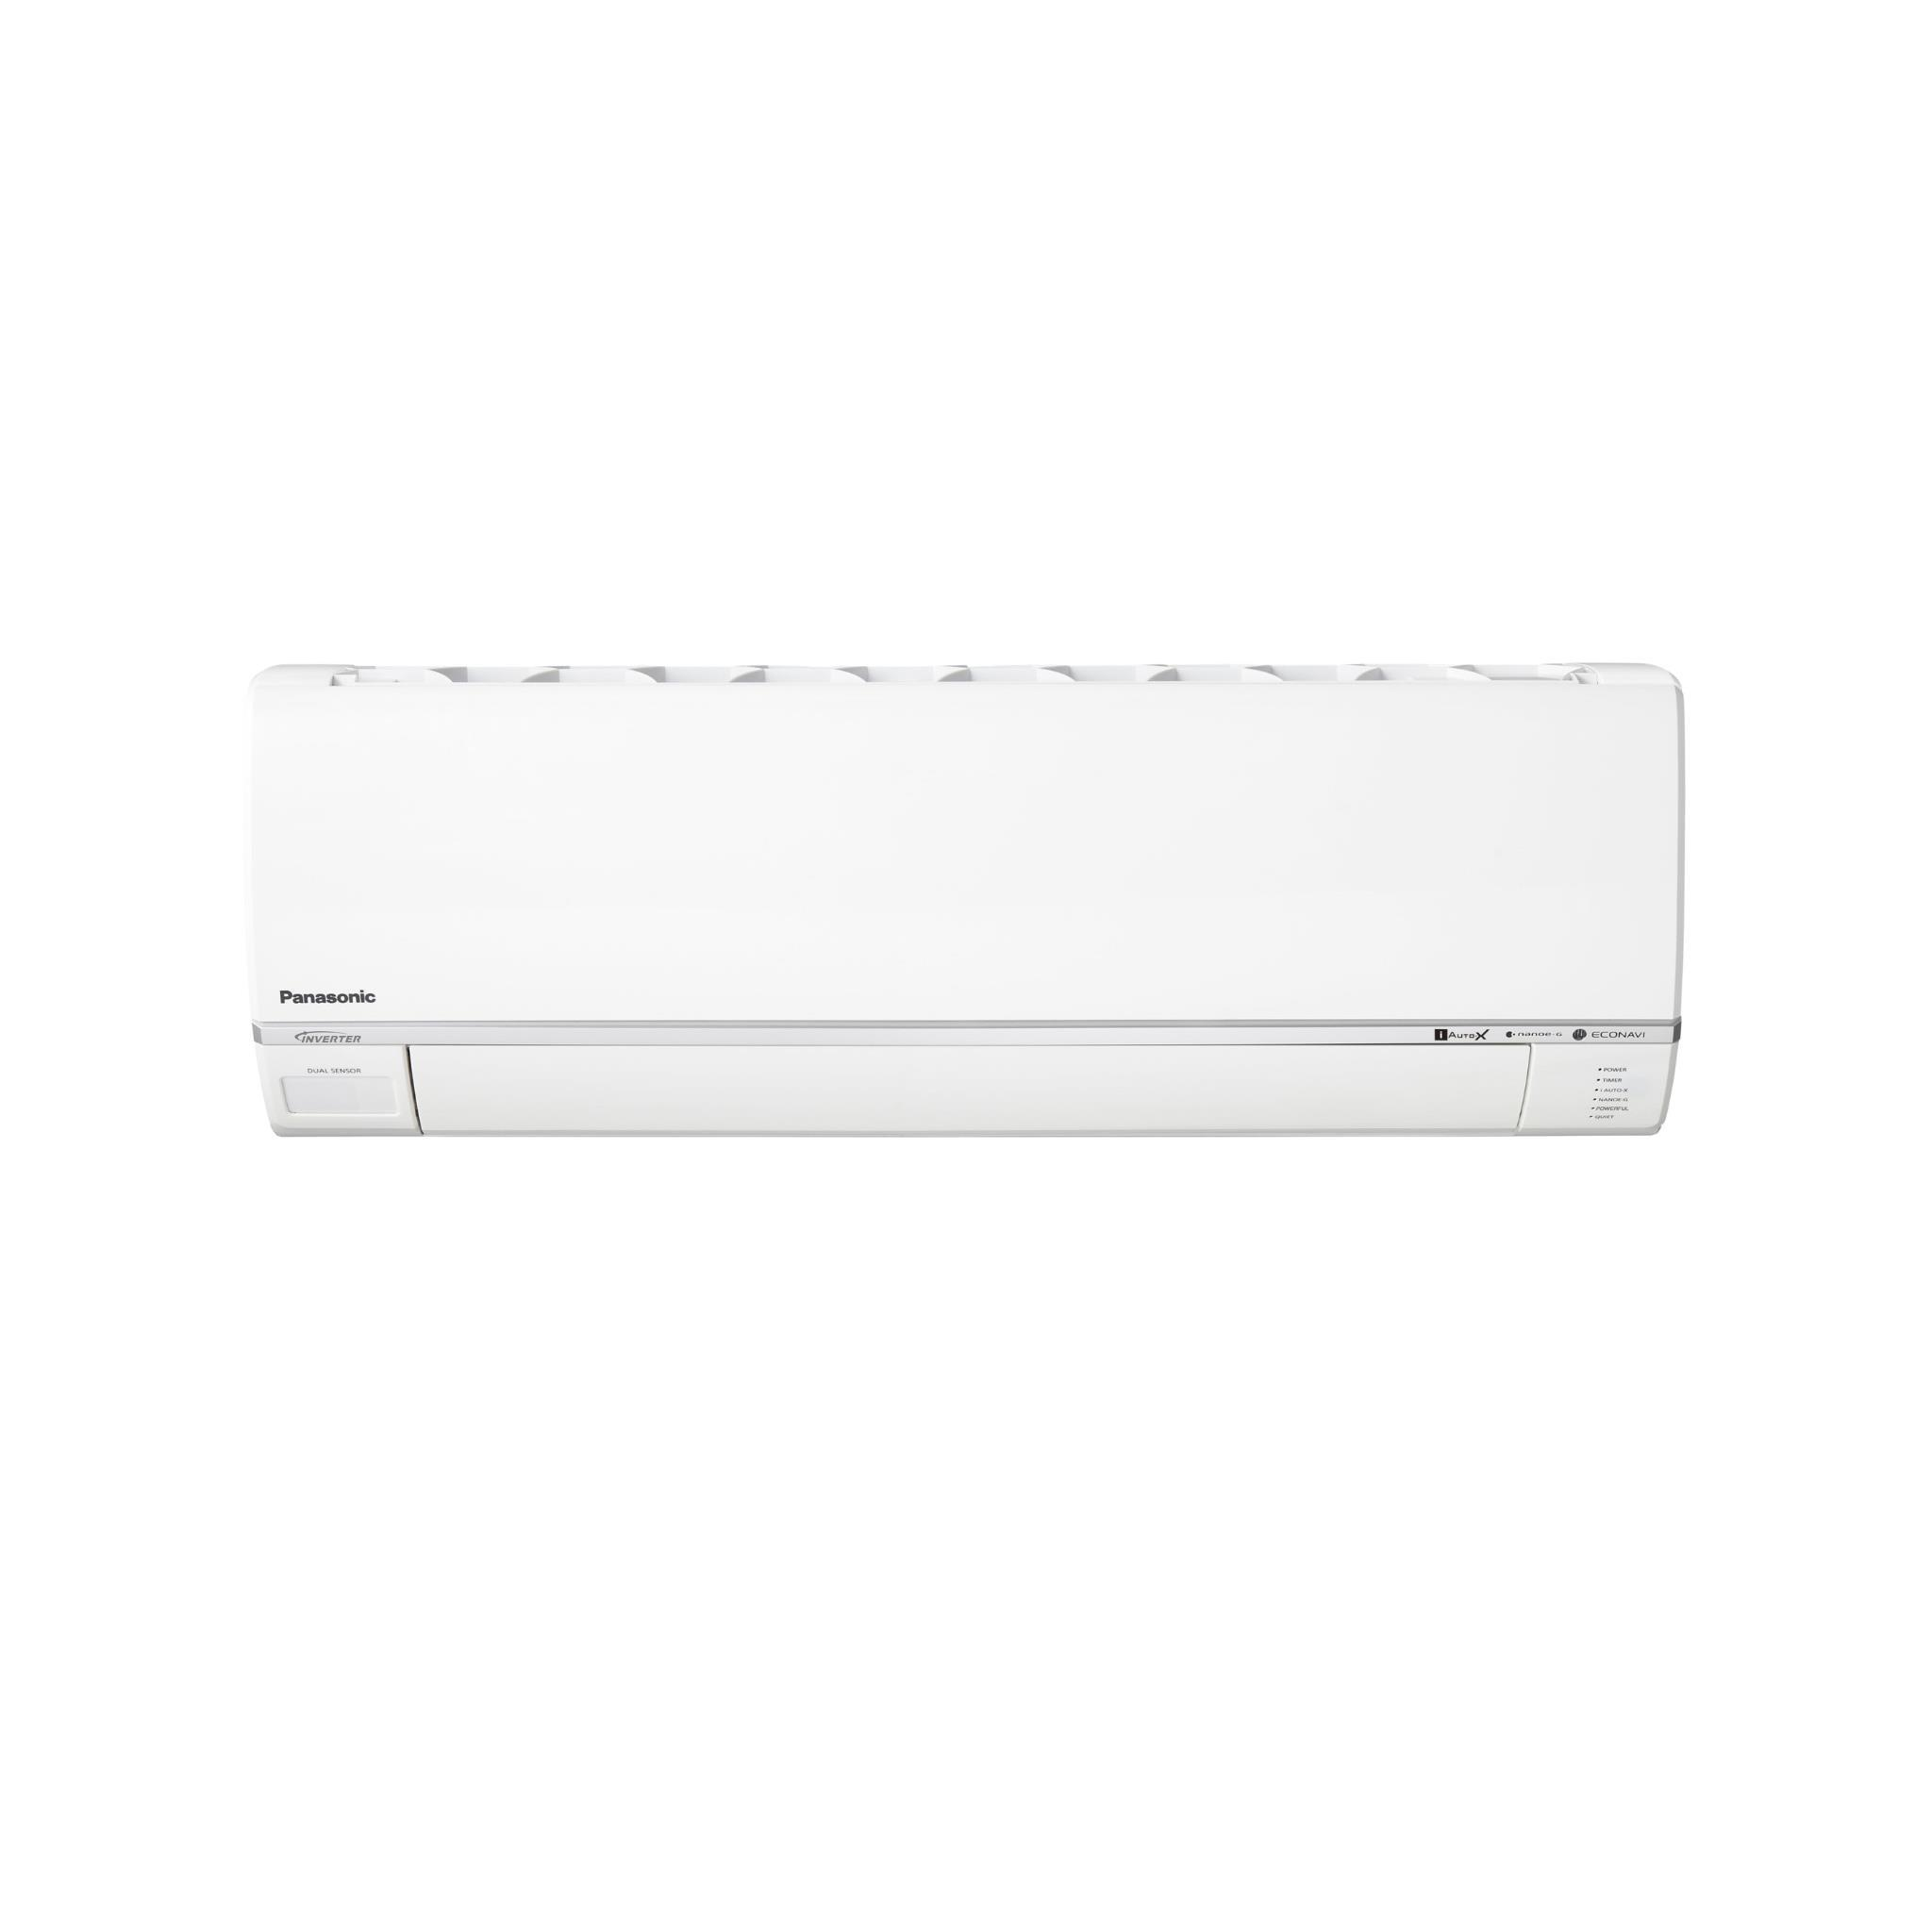 Panasonic 3.5kW Cooling Only Inverter Split R32 Air Conditioner